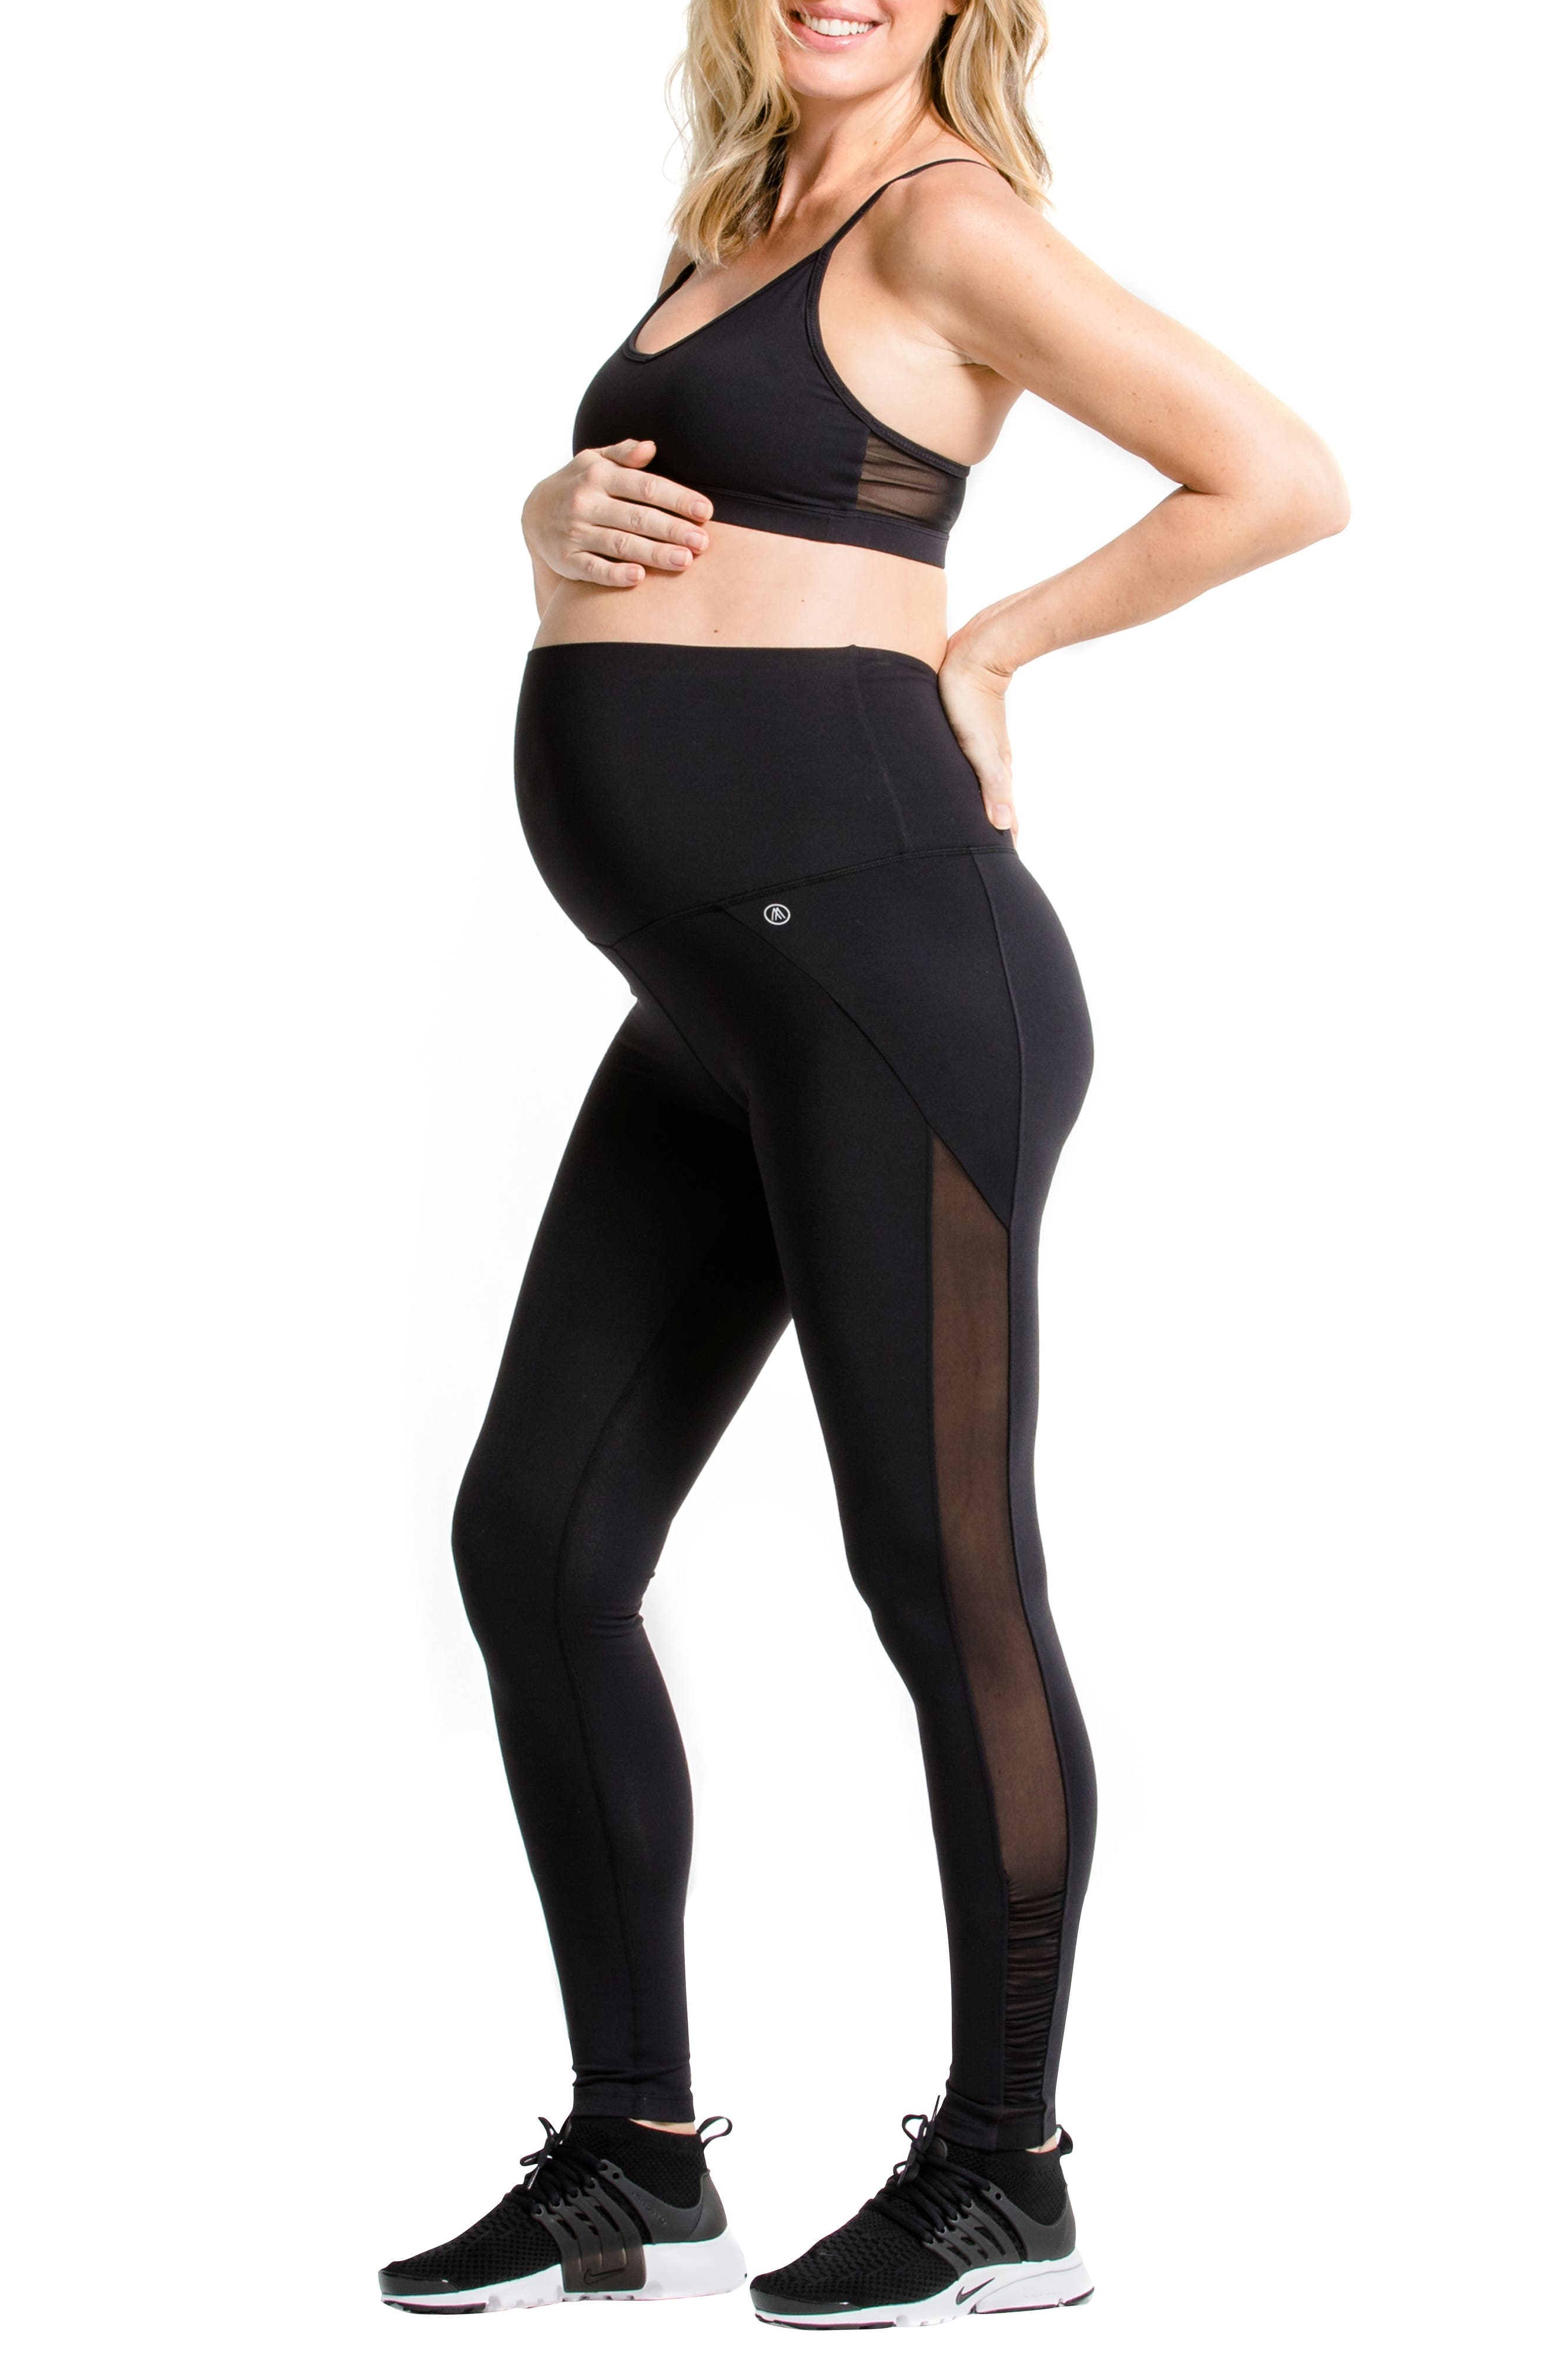 Amari Juno Maternity Leggings